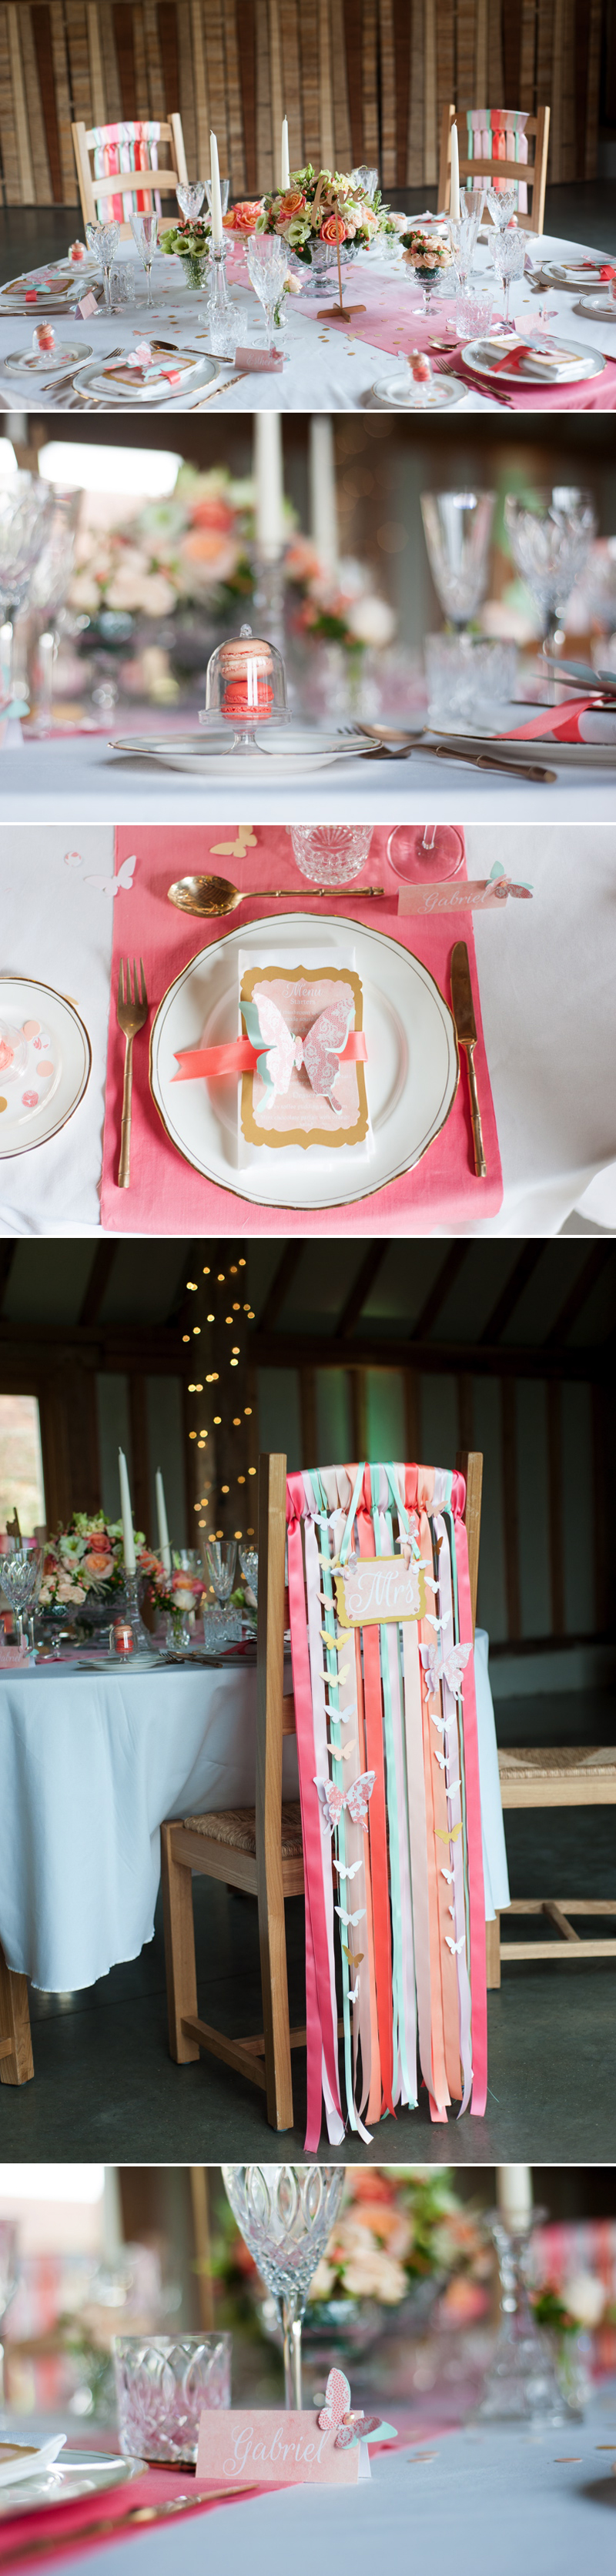 wedding-venues-in-west-sussex-southend-barns-peach-and-mint-wedding-inspiration-styled-shoot-uk-wedding-venue-directory-coco-wedding-venues-002